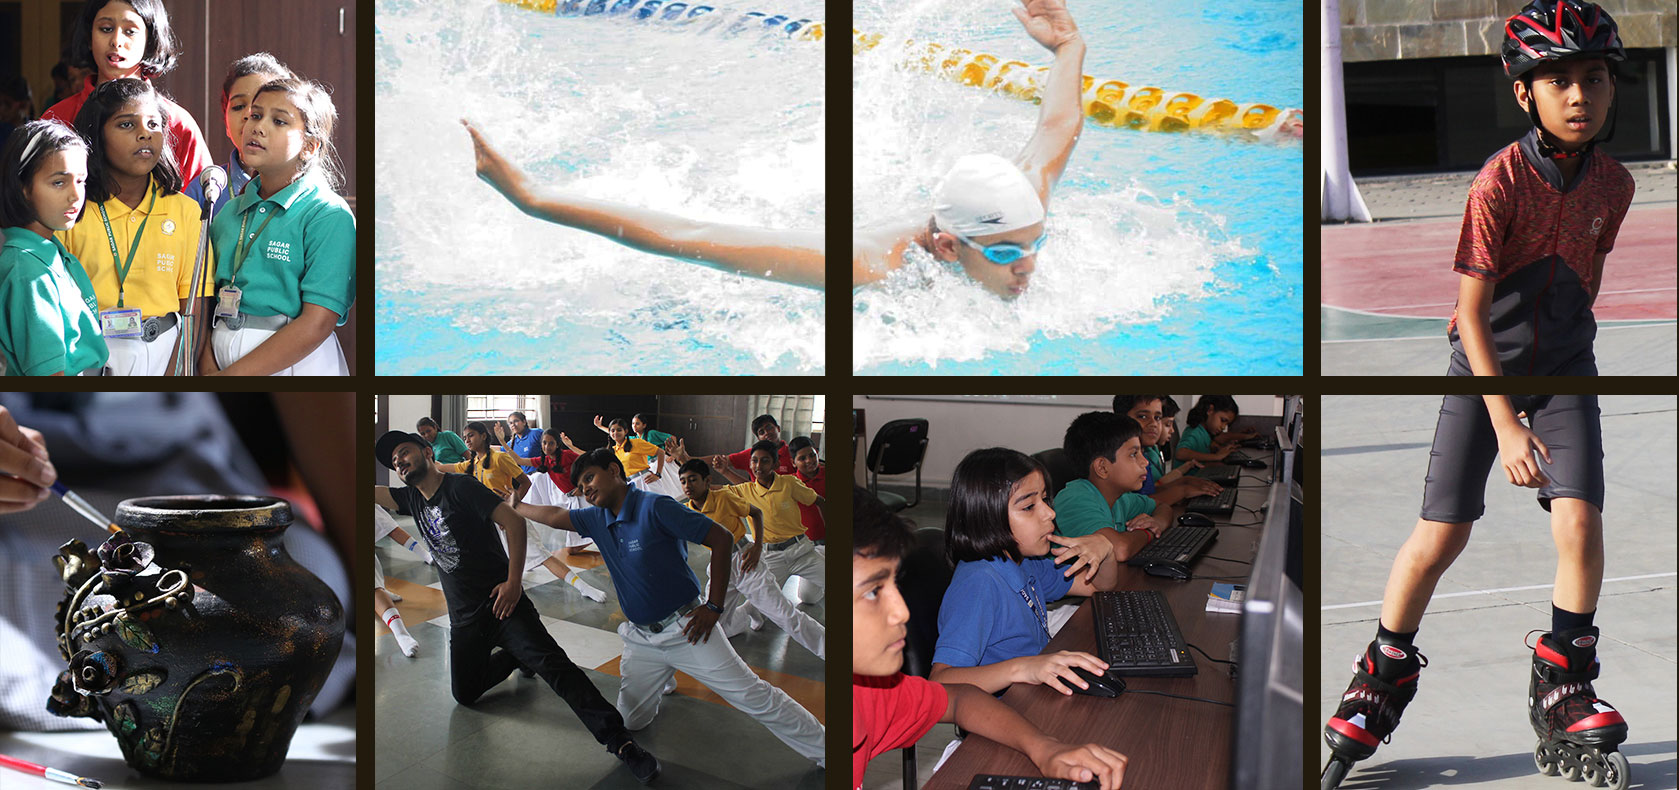 best schools in bhopal, top schools in bhopal, top cbse schools in bhopal, day boarding schools in bhopal, schools in bhopal